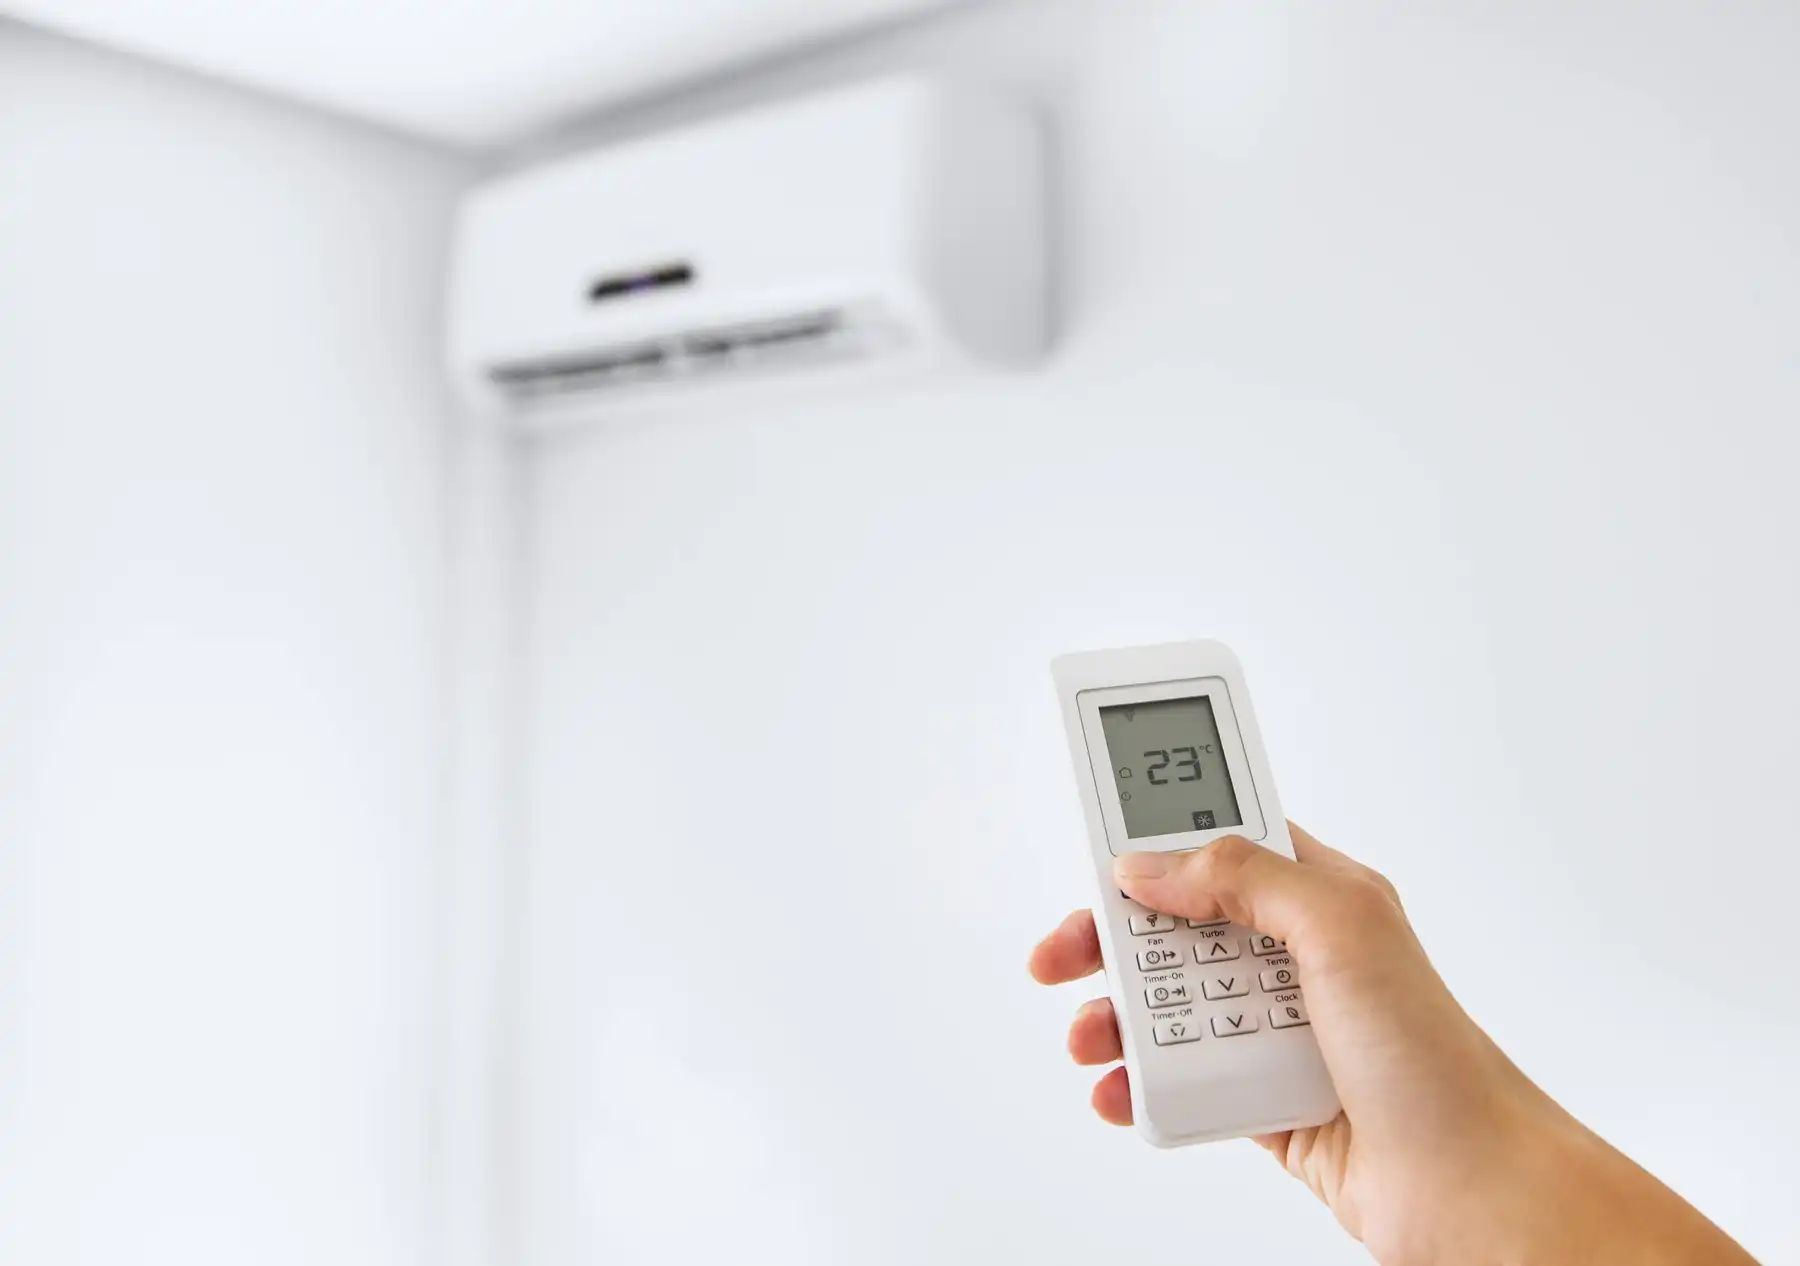 cleaning air conditioner shutterstock 463157210-2178898-jpg-1800w